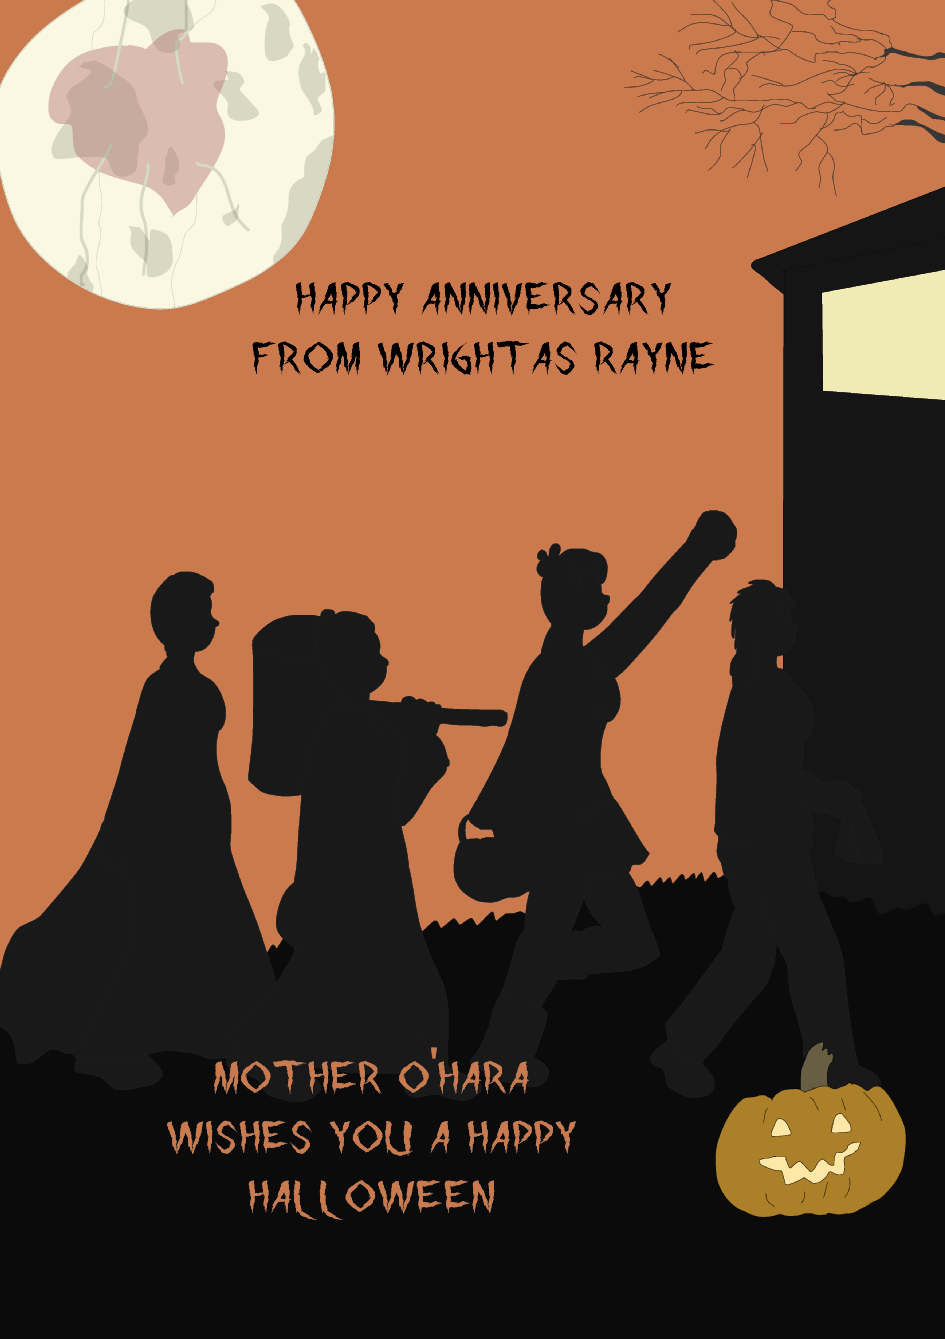 Wright as Rayne's Fifth Anniversary